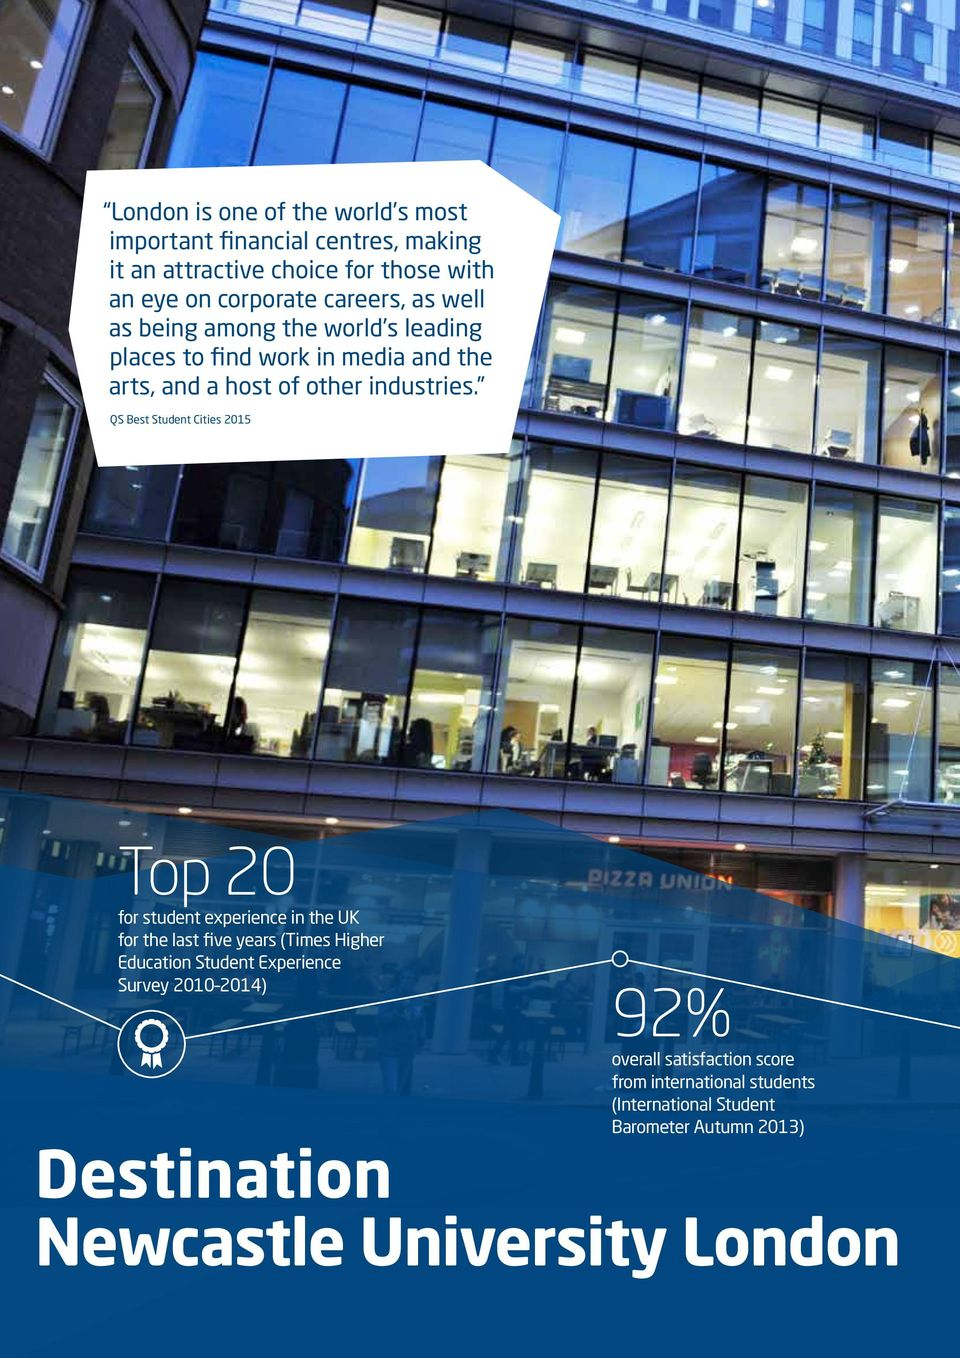 QS Best Student Cities 2015 Top 20 for student experience in the UK for the last five years (Times Higher Education Student Experience